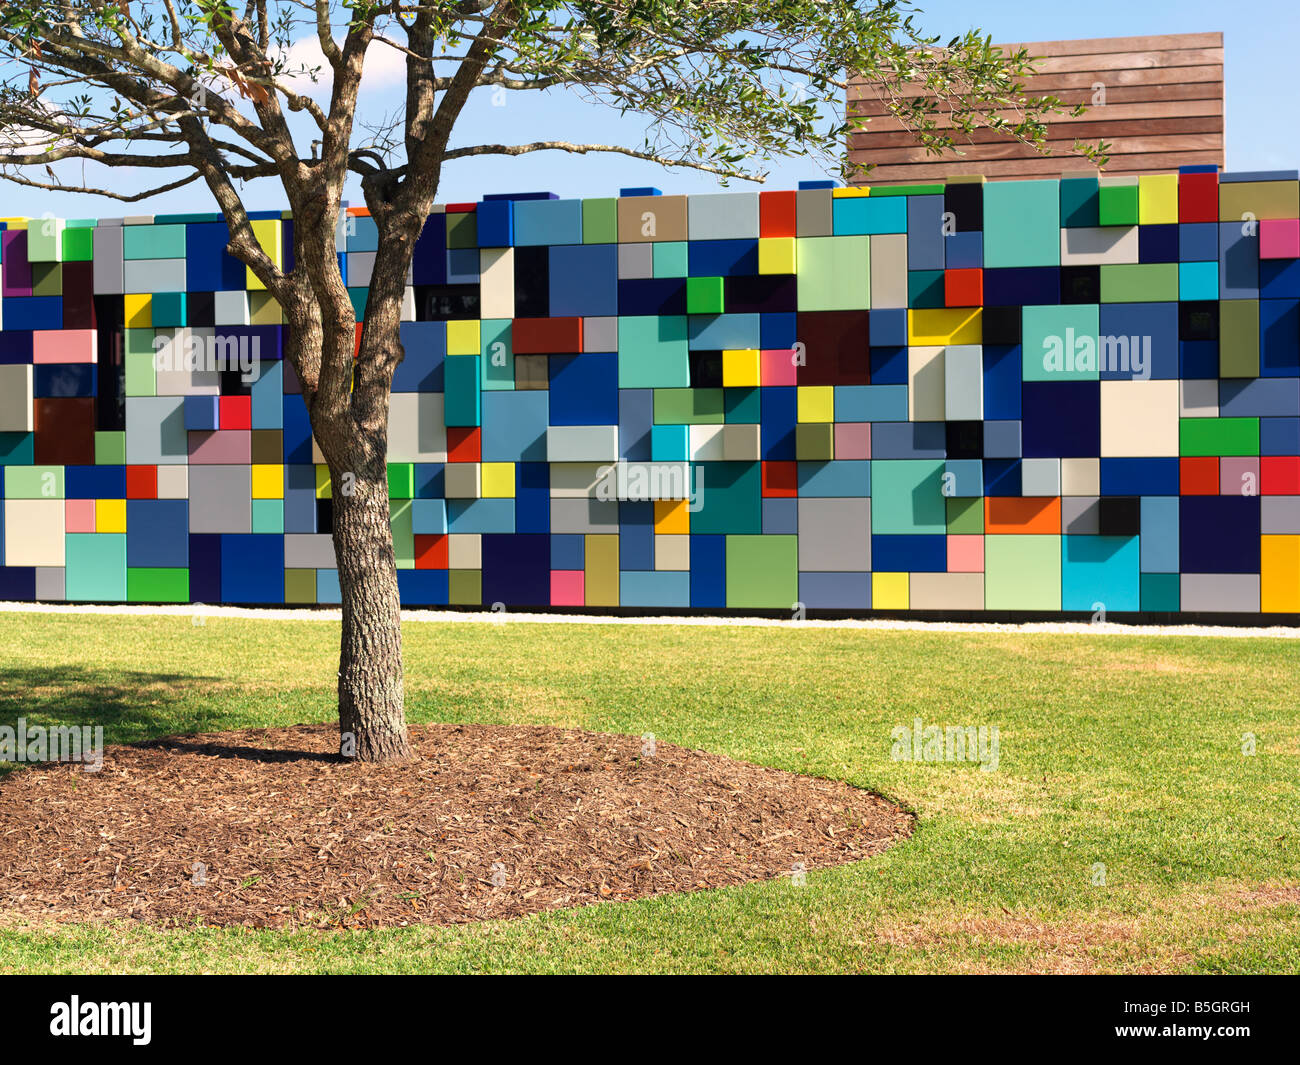 USA,Texas,Houston,colorful multi colored building used as entrance for parking garage at Discovery Park Synchronicity - Stock Image